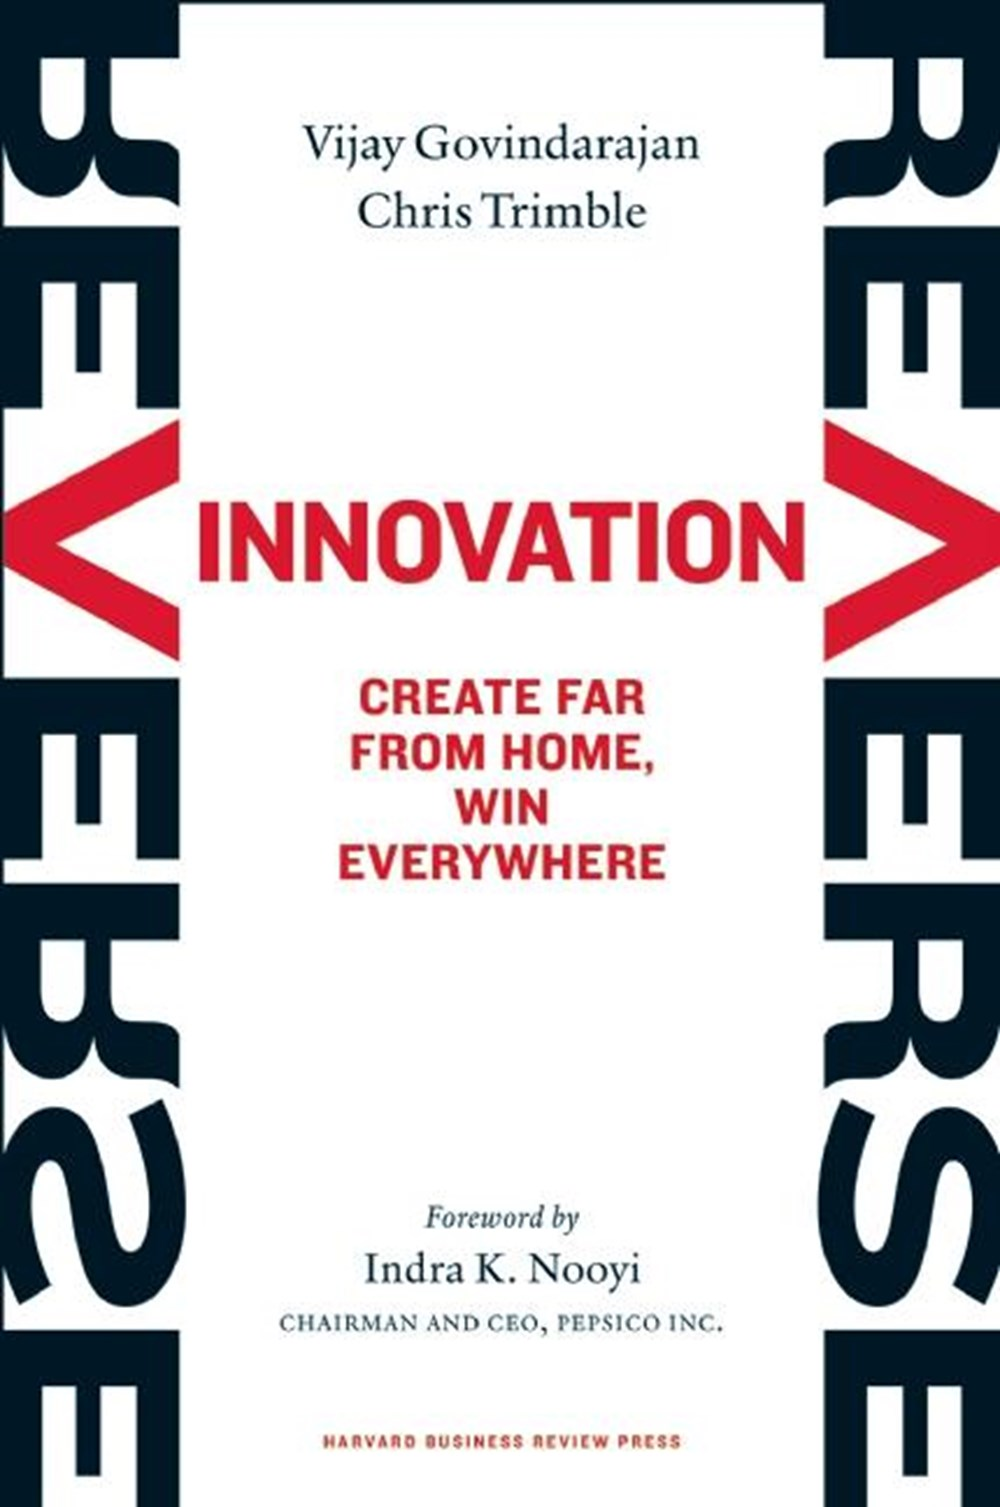 Reverse Innovation Create Far from Home, Win Everywhere